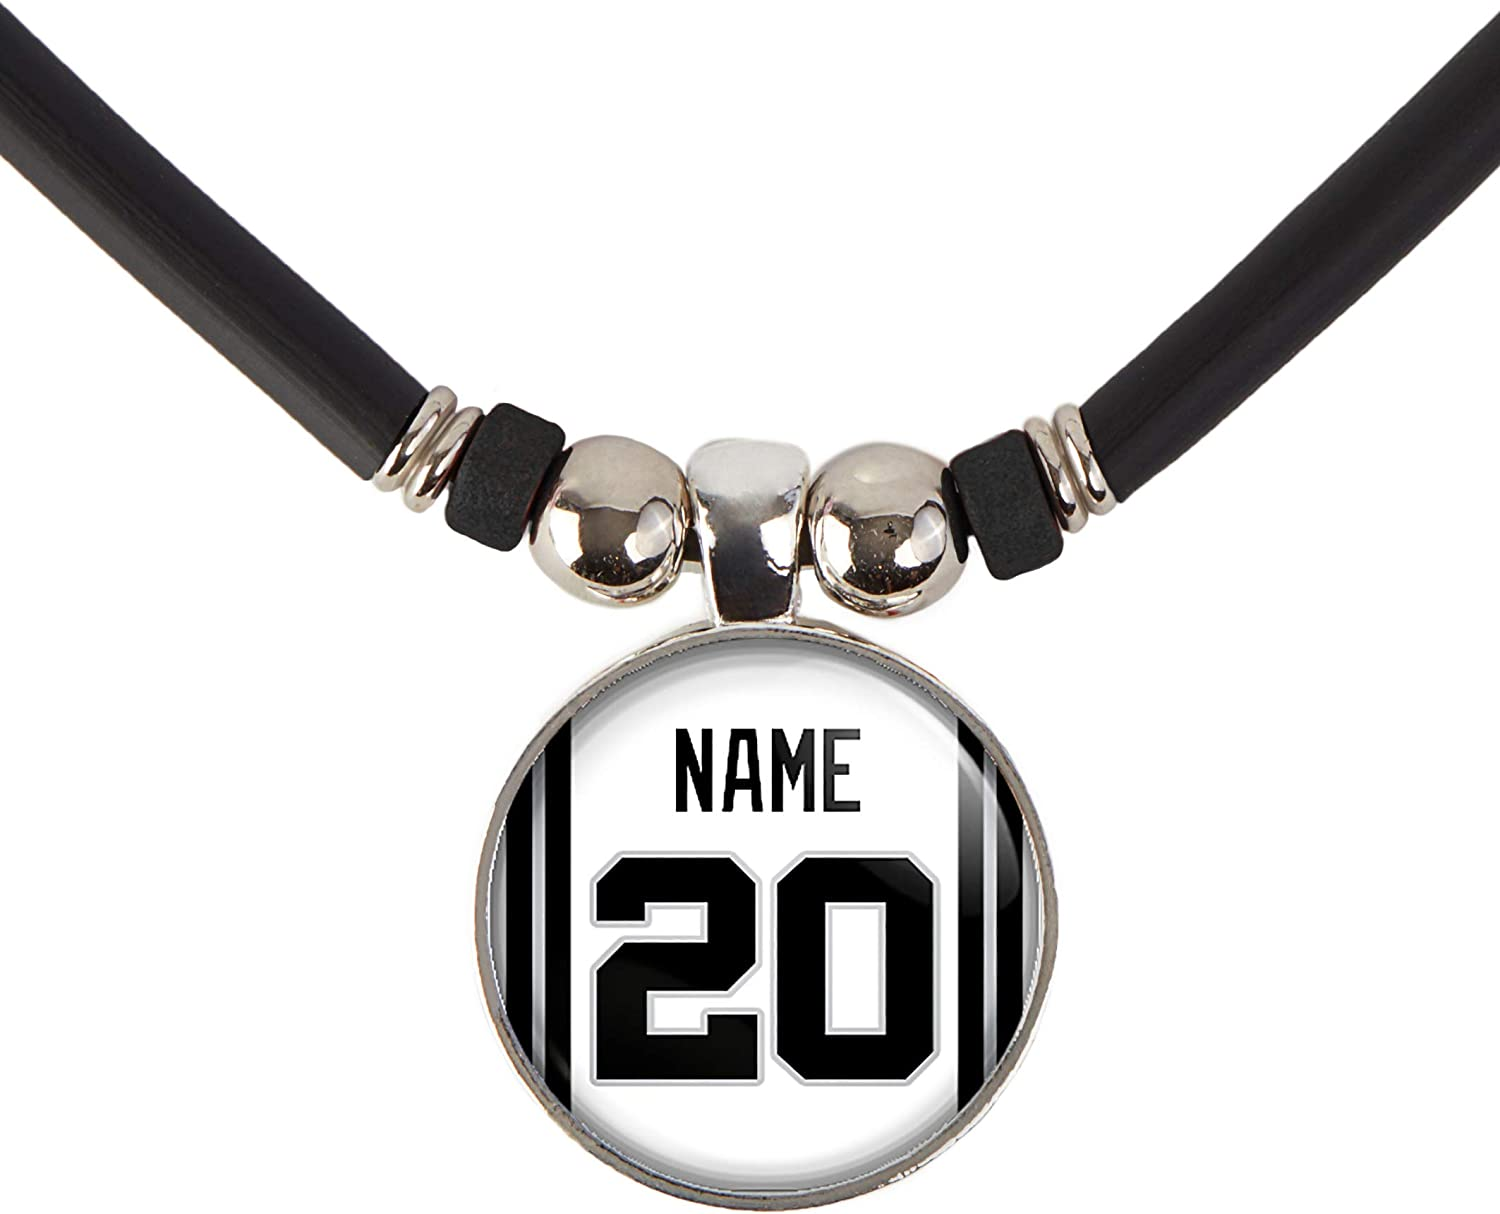 SpotlightJewels San Antonio Basketball Jersey Necklace Personalized with Your Name and Number, Personalize by EMAIL